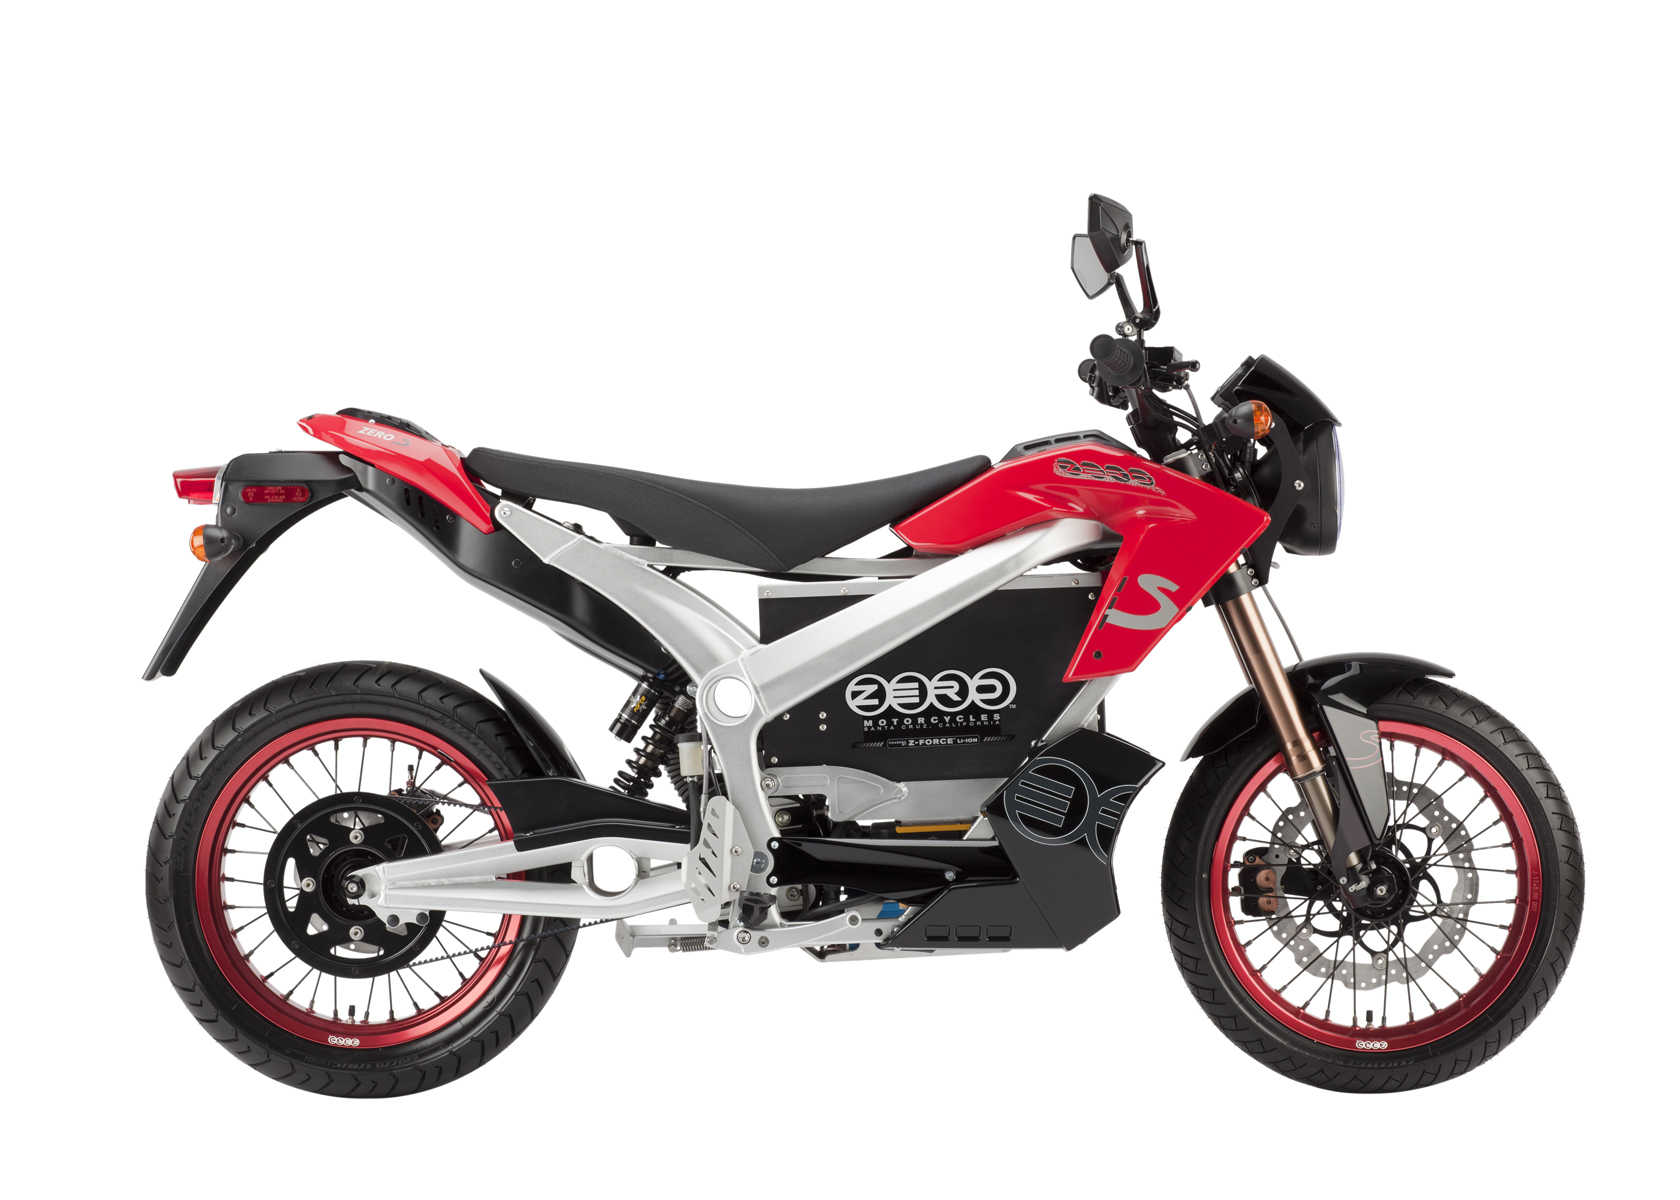 '.2011 Zero S Electric Motorcycle: Red Profile Right, White Background.'